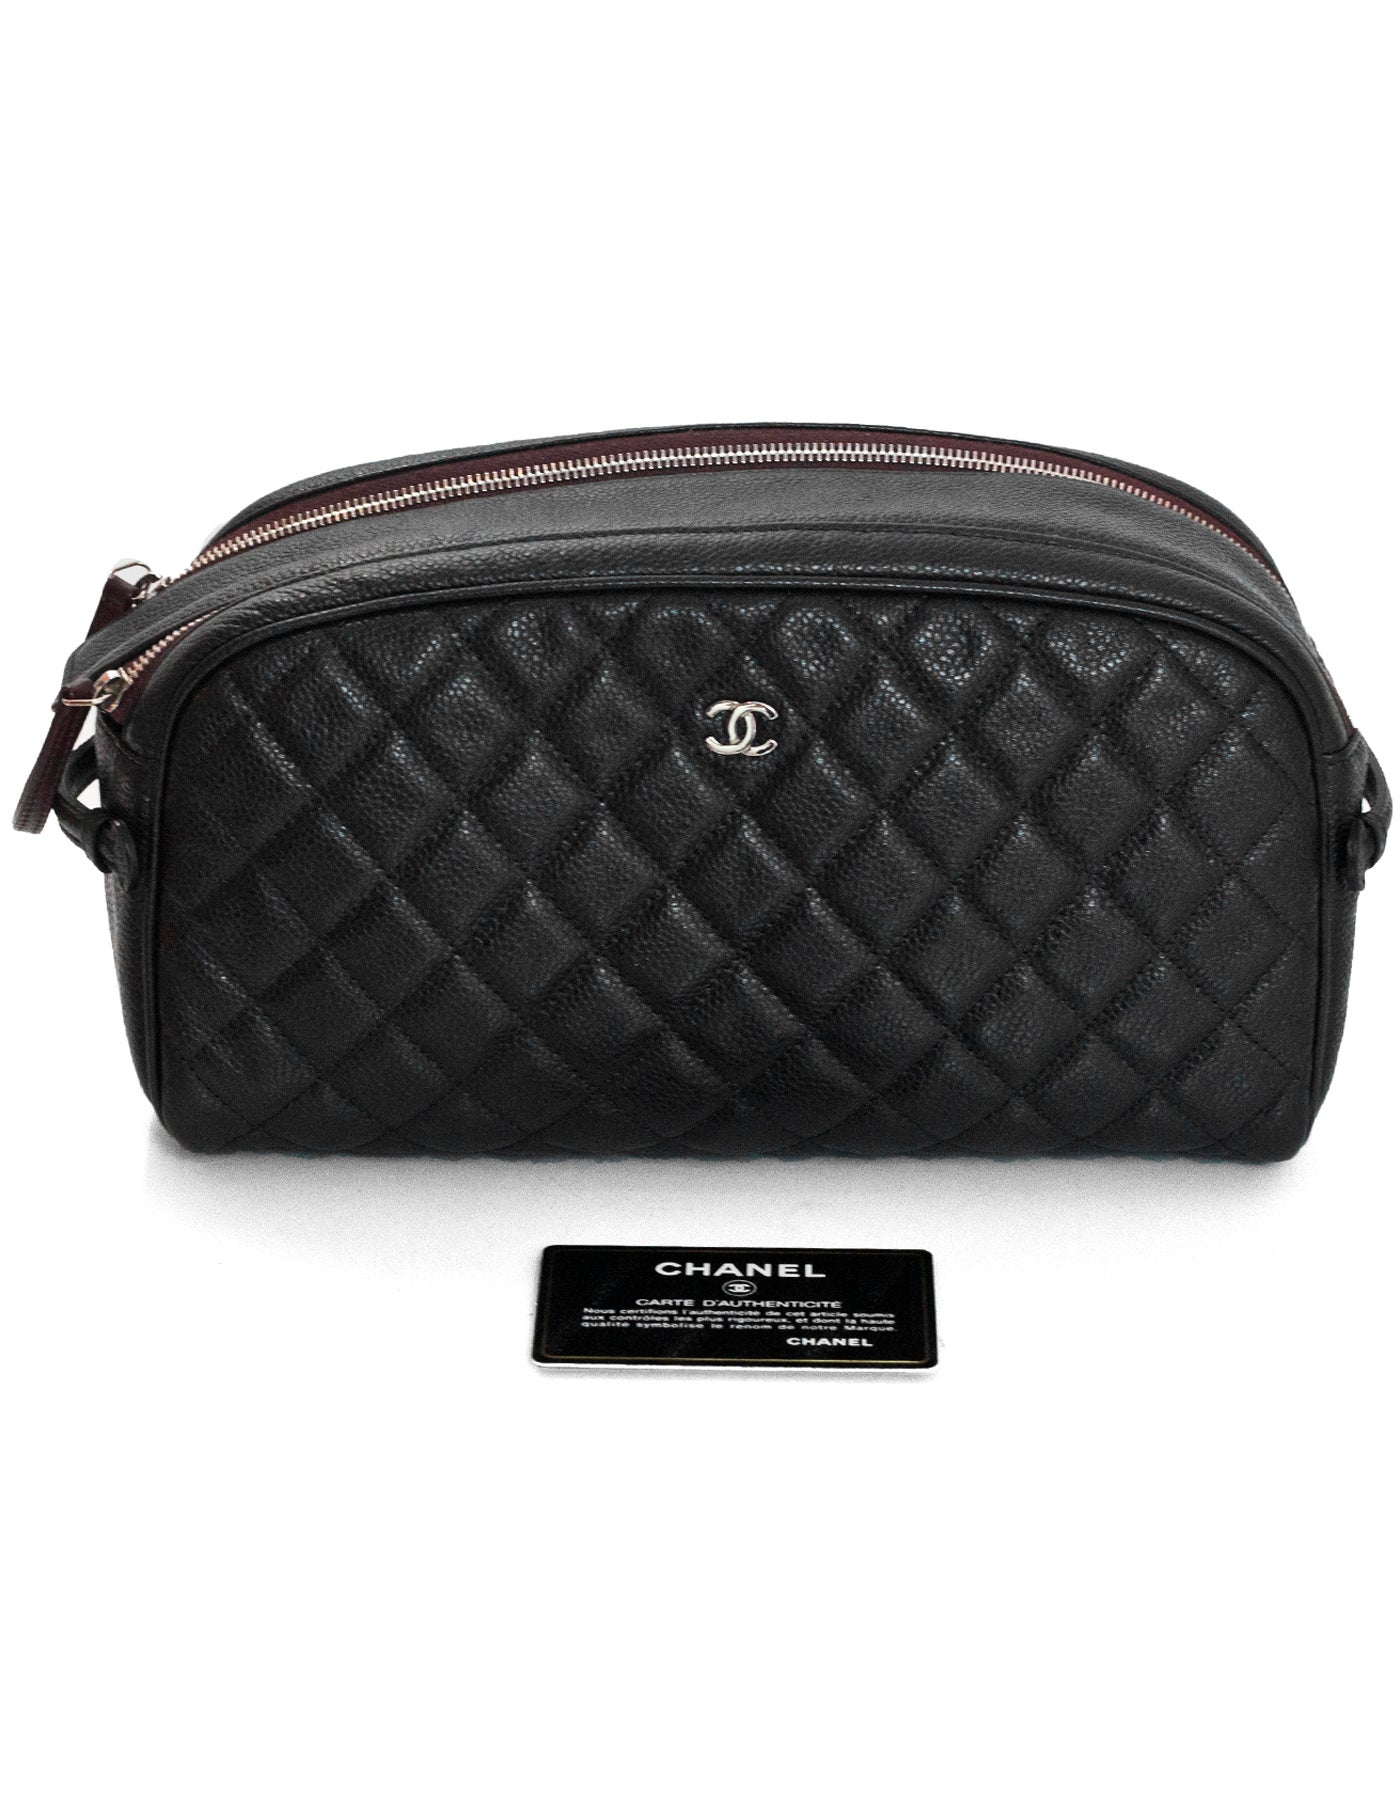 1035a7e927b0 Chanel Black Caviar Leather Double Zip Cosmetic / Toiletry Case Bag For Sale  at 1stdibs